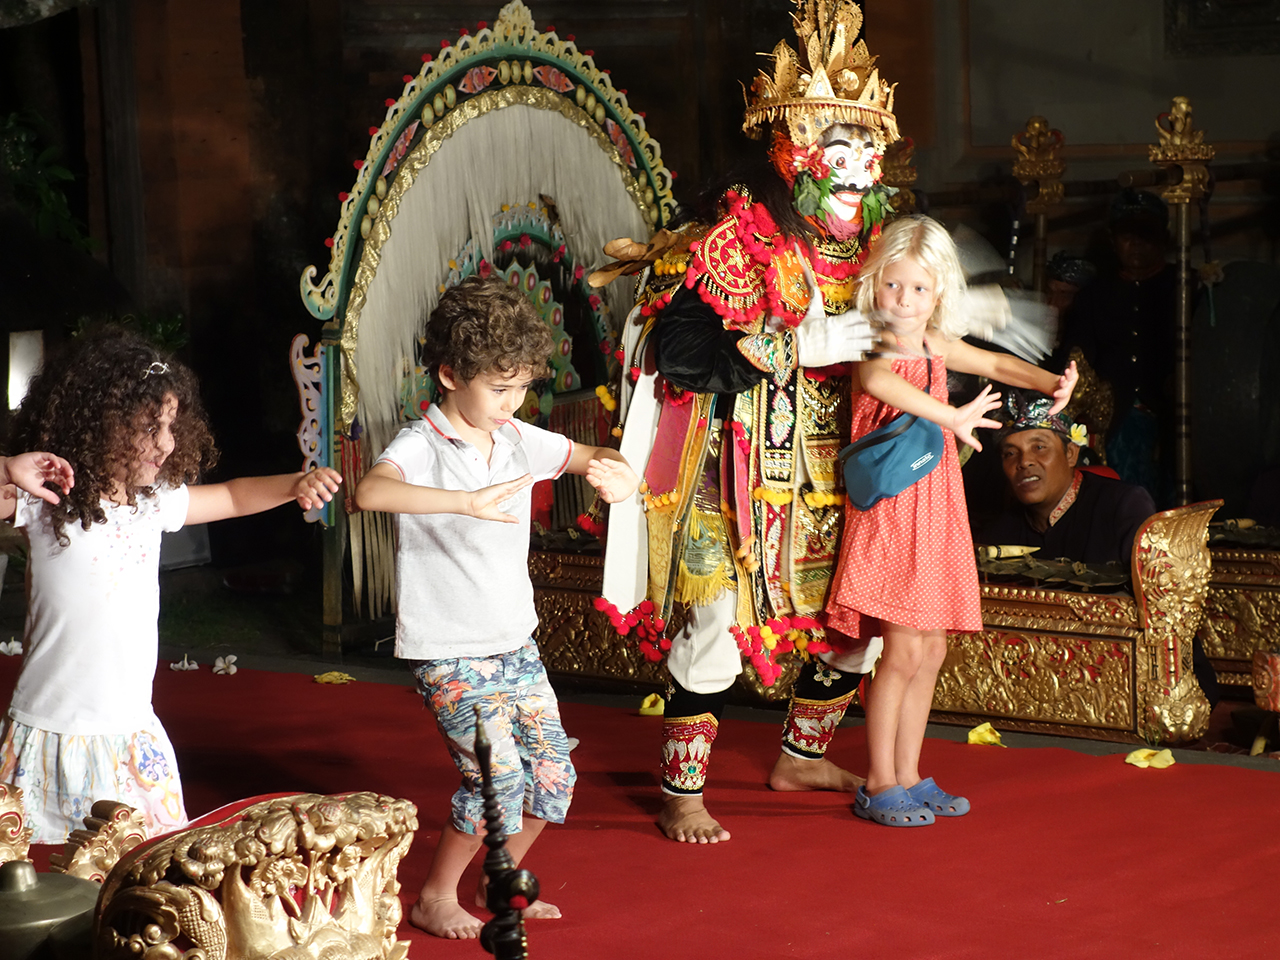 Salomon family dancing in Bali